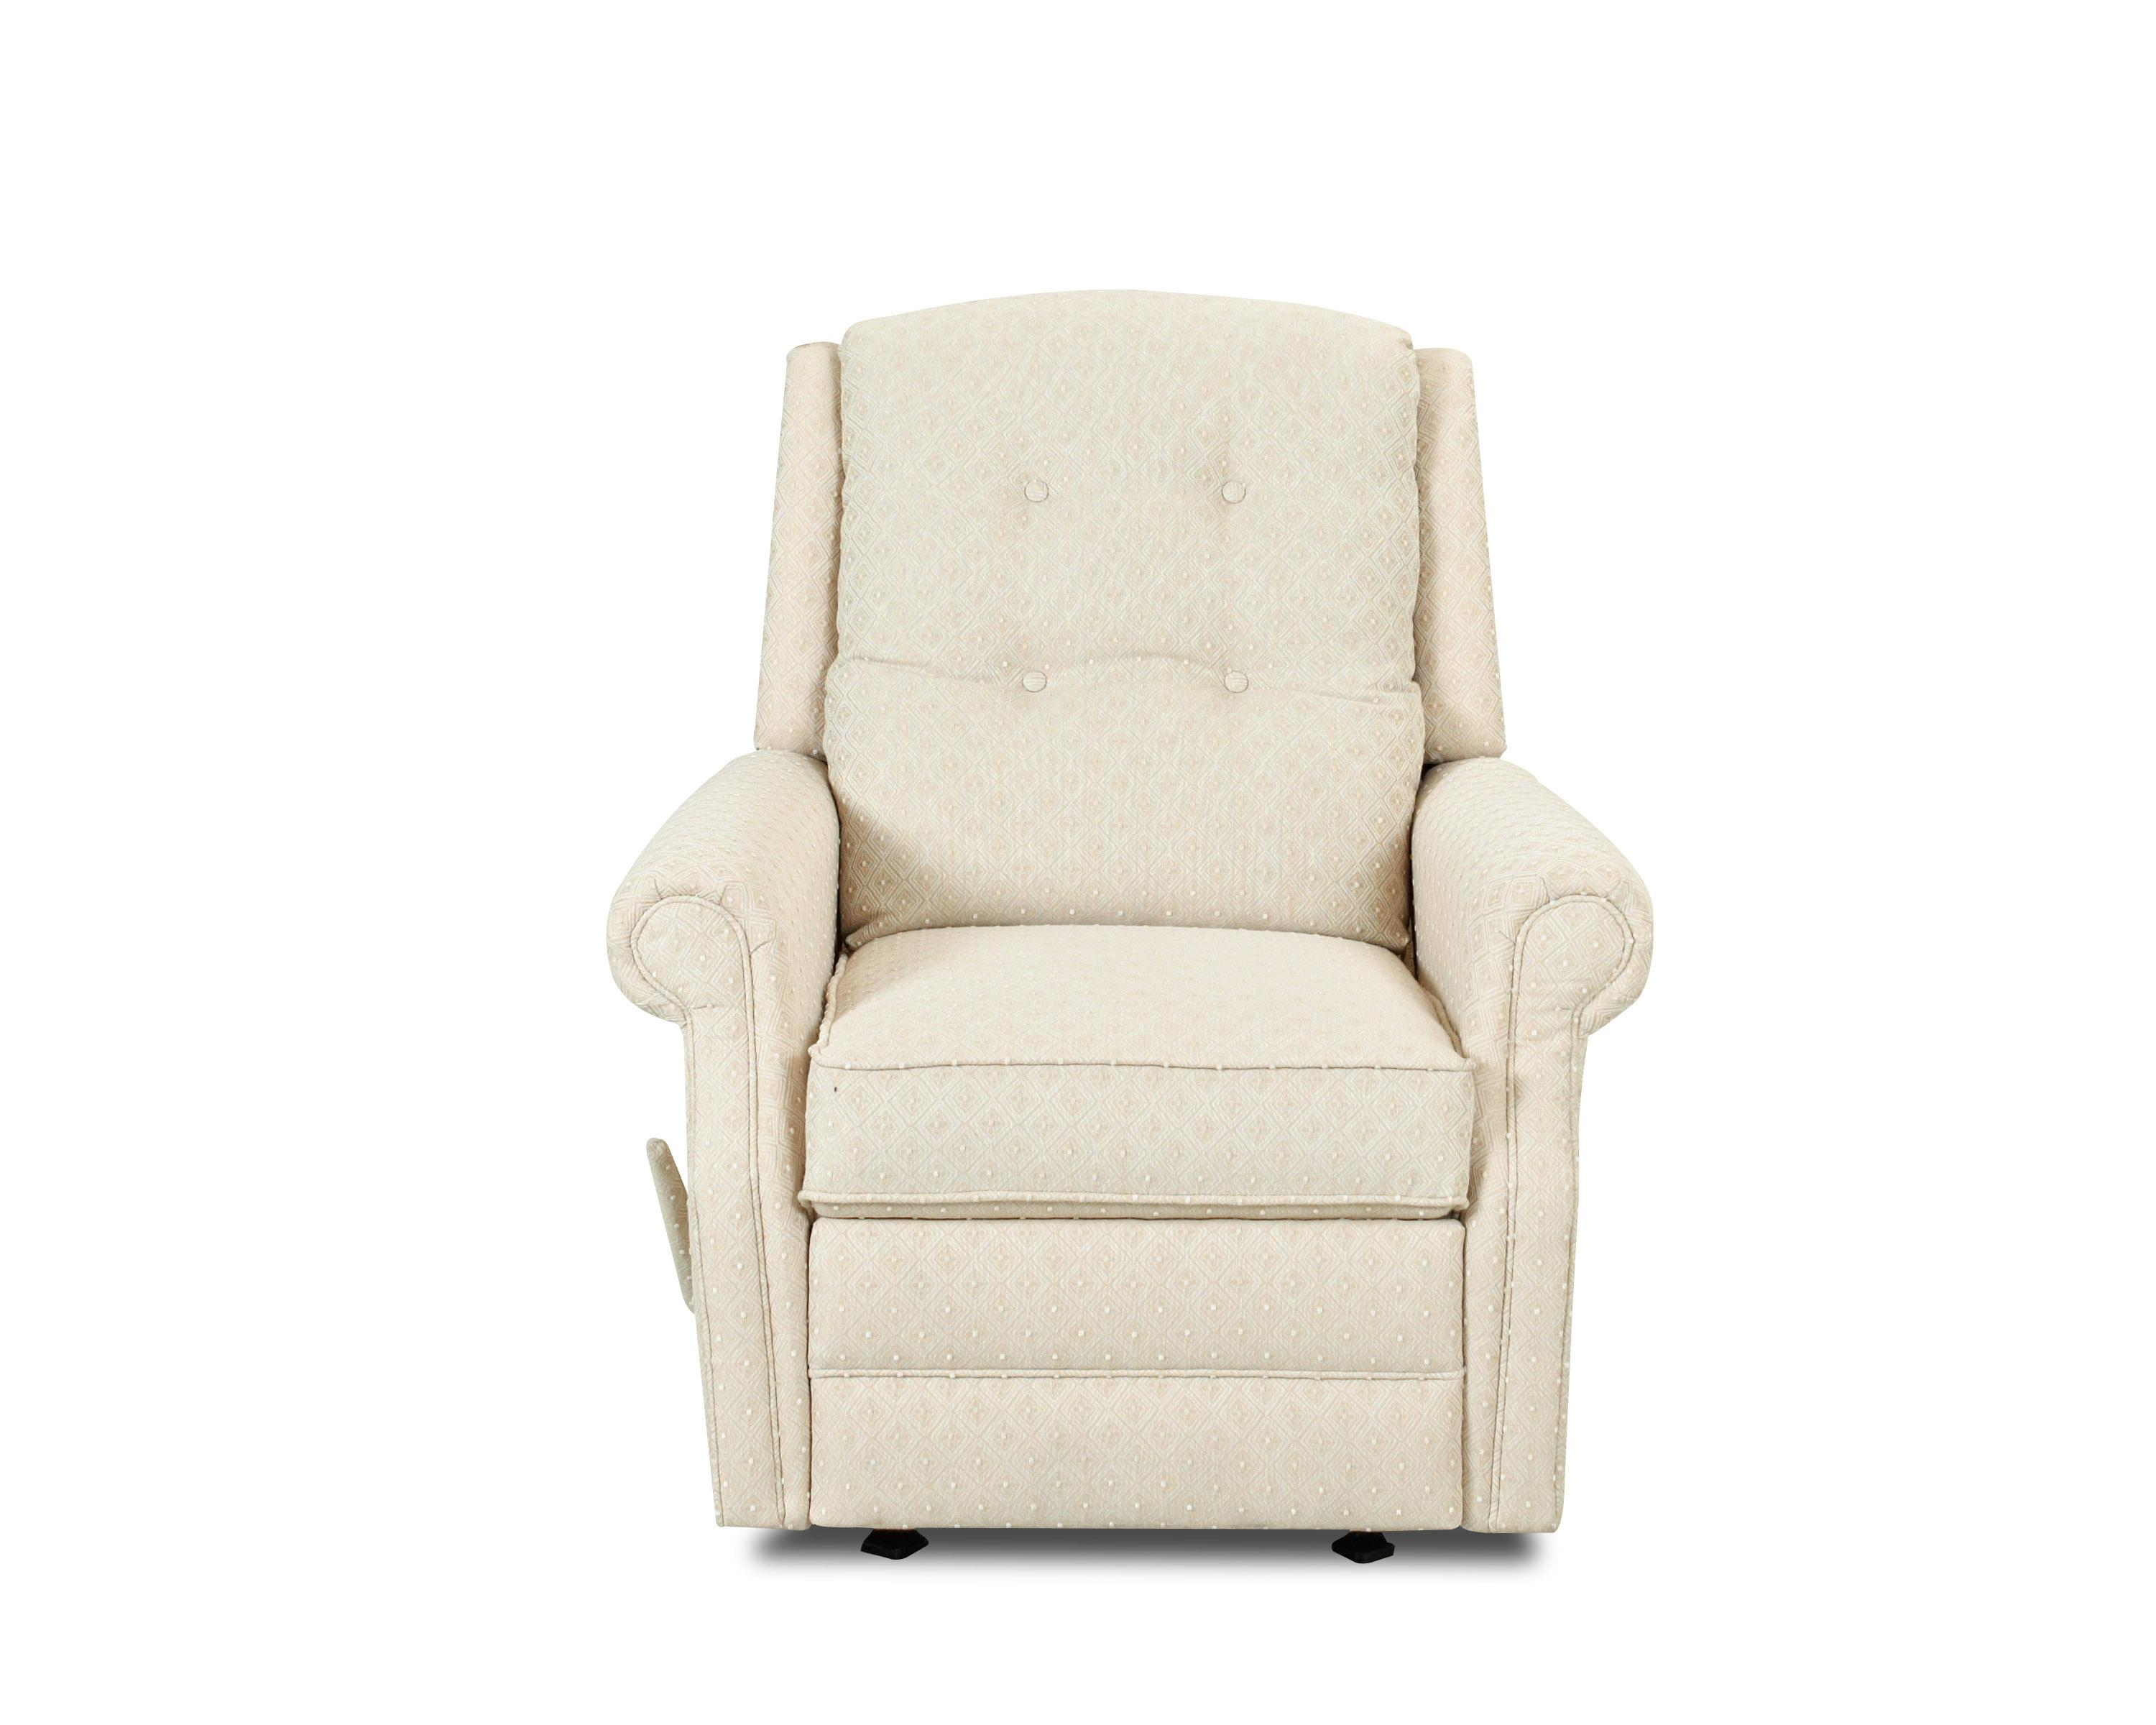 Recliner Rocking Chair Transitional Manual Swivel Rocking Reclining Chair With